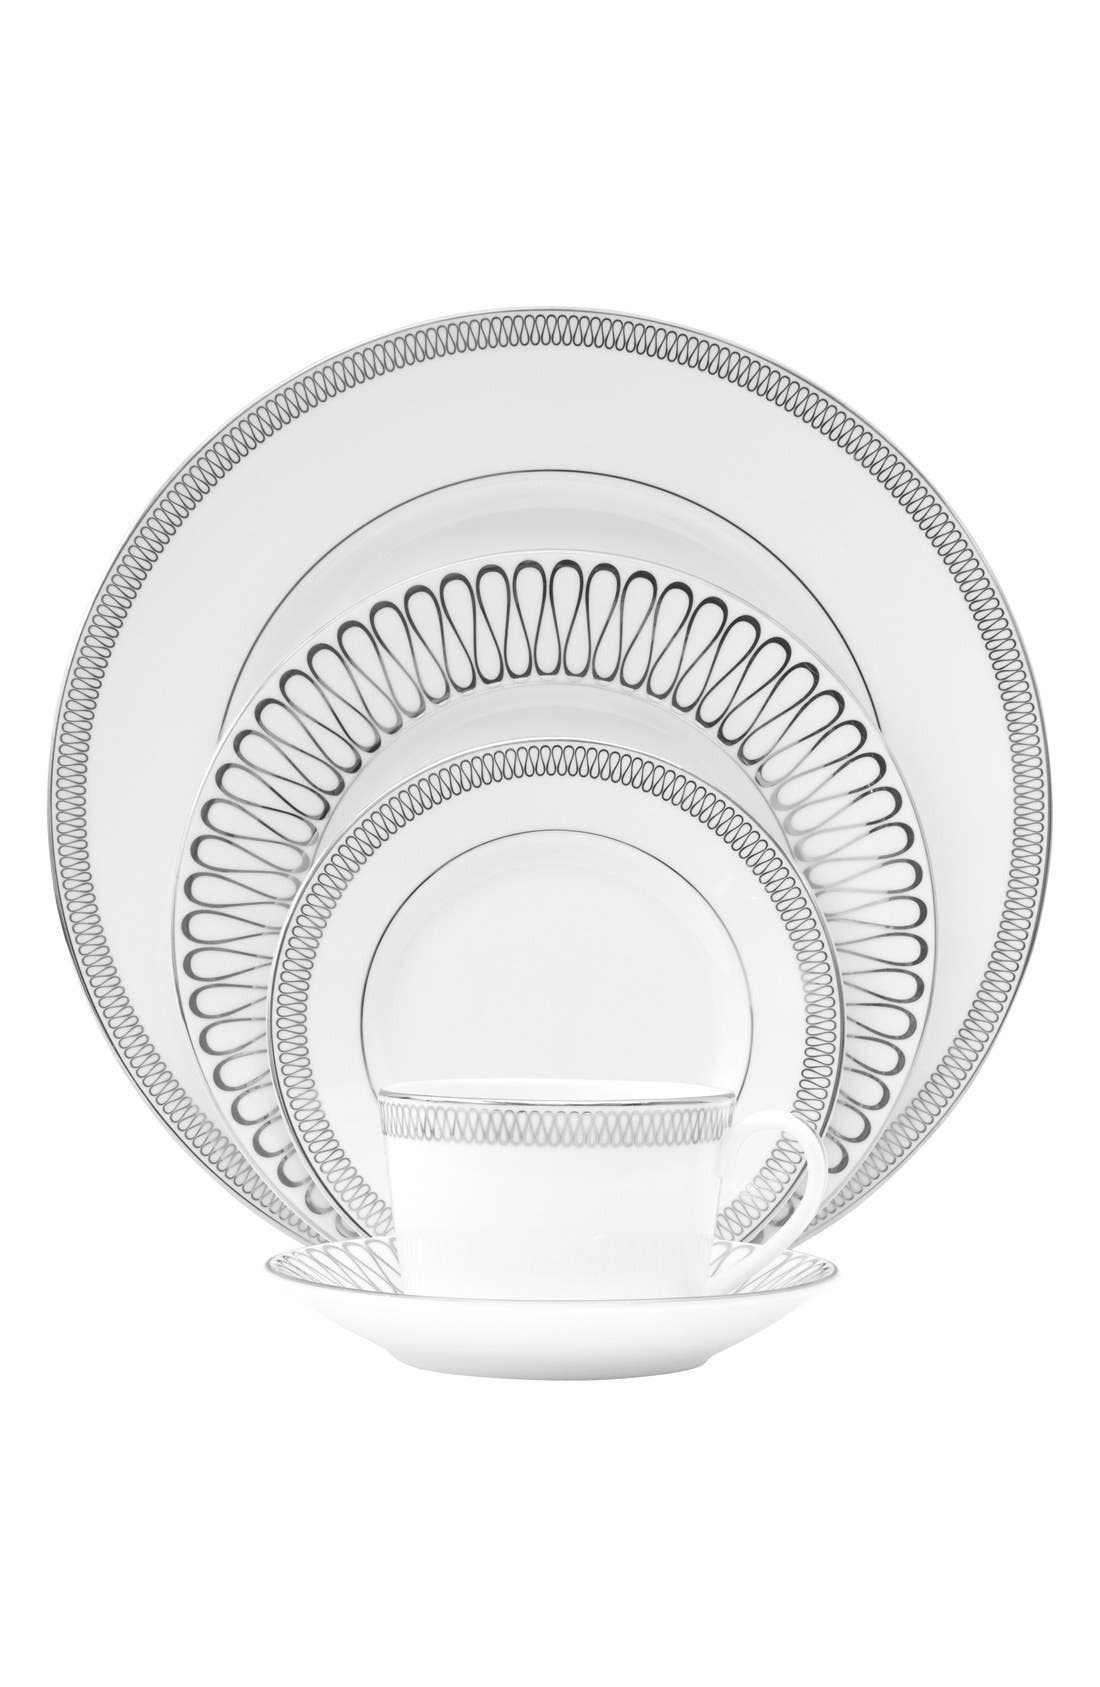 Main Image - MoniqueLhuillierWaterford 'Opulence' 5-Piece China Place Setting